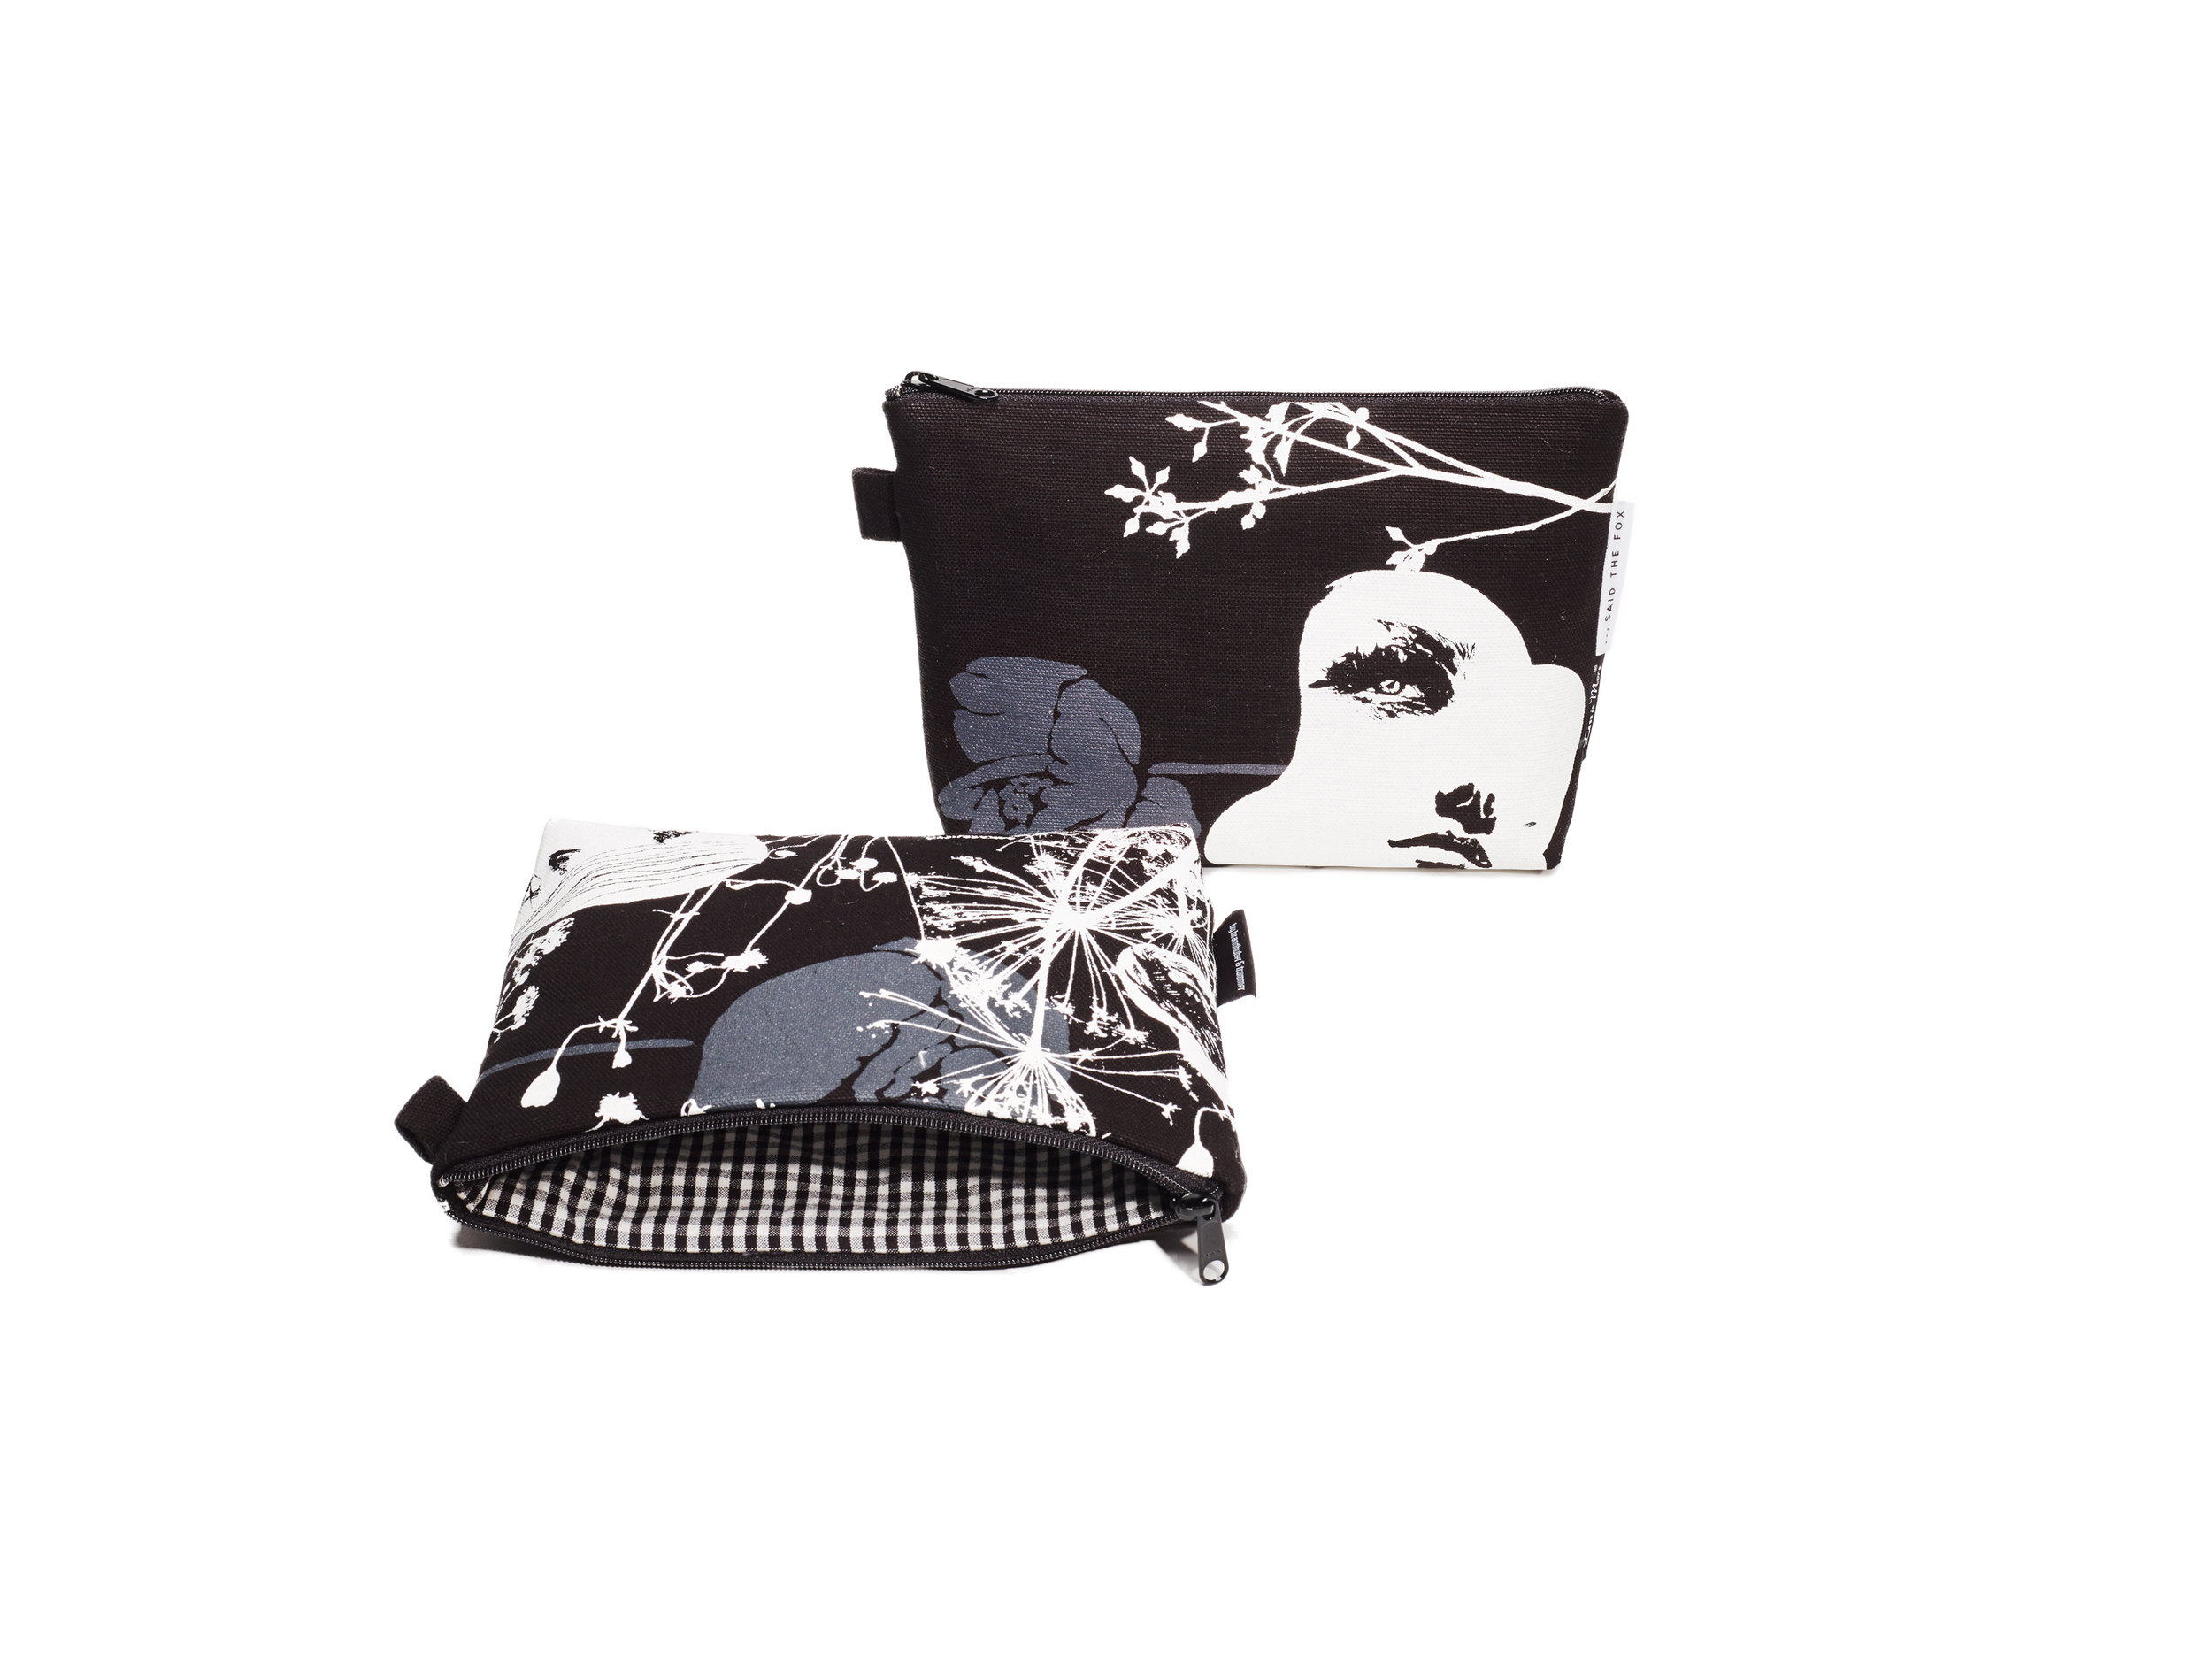 SAIDTHEFOX-collaboration-LessIsMore-BlagovestaBakardjieva-washbag